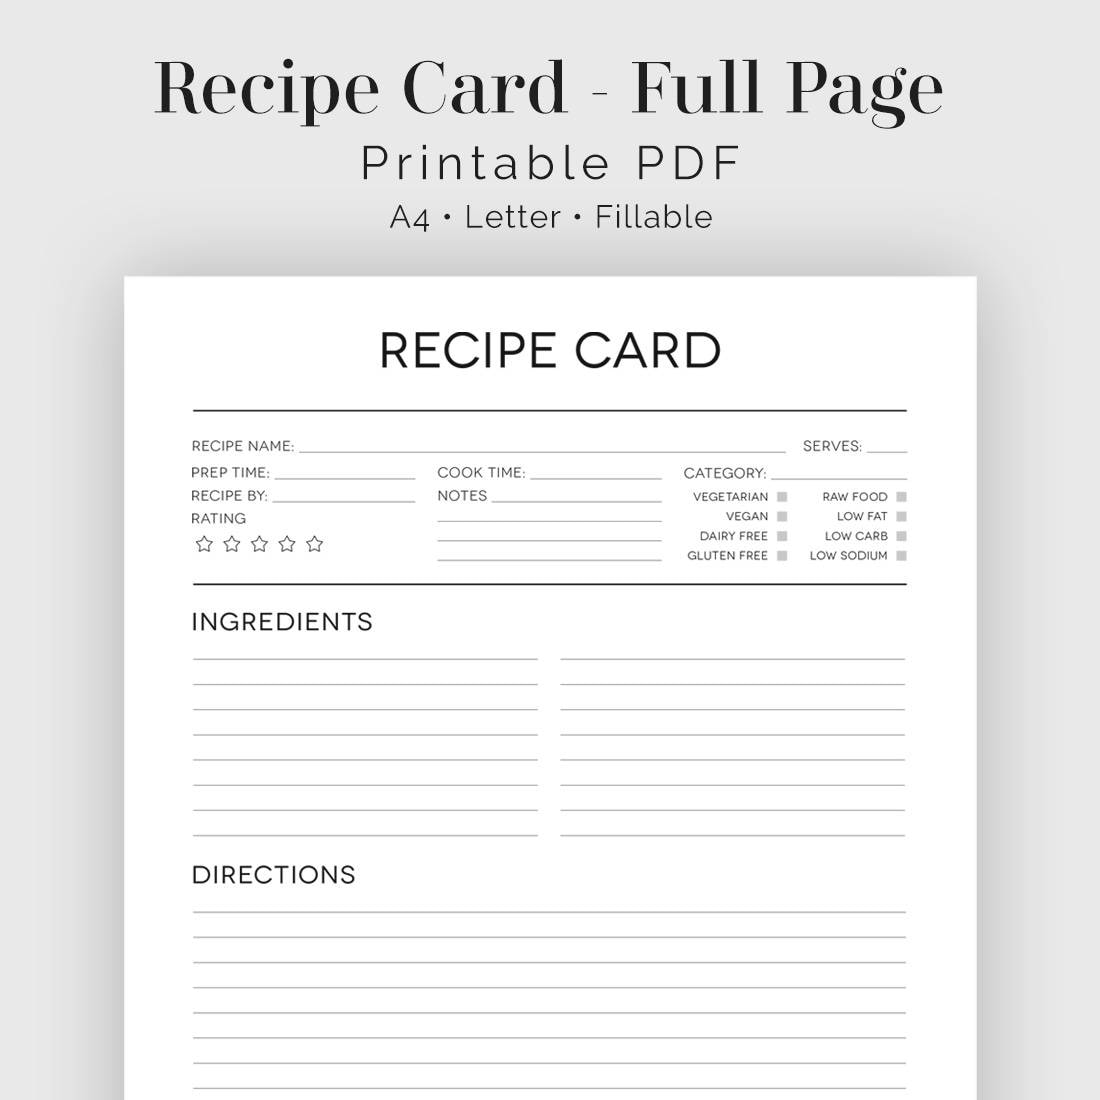 Recipe Card Full Page Black & White Fillable Printable